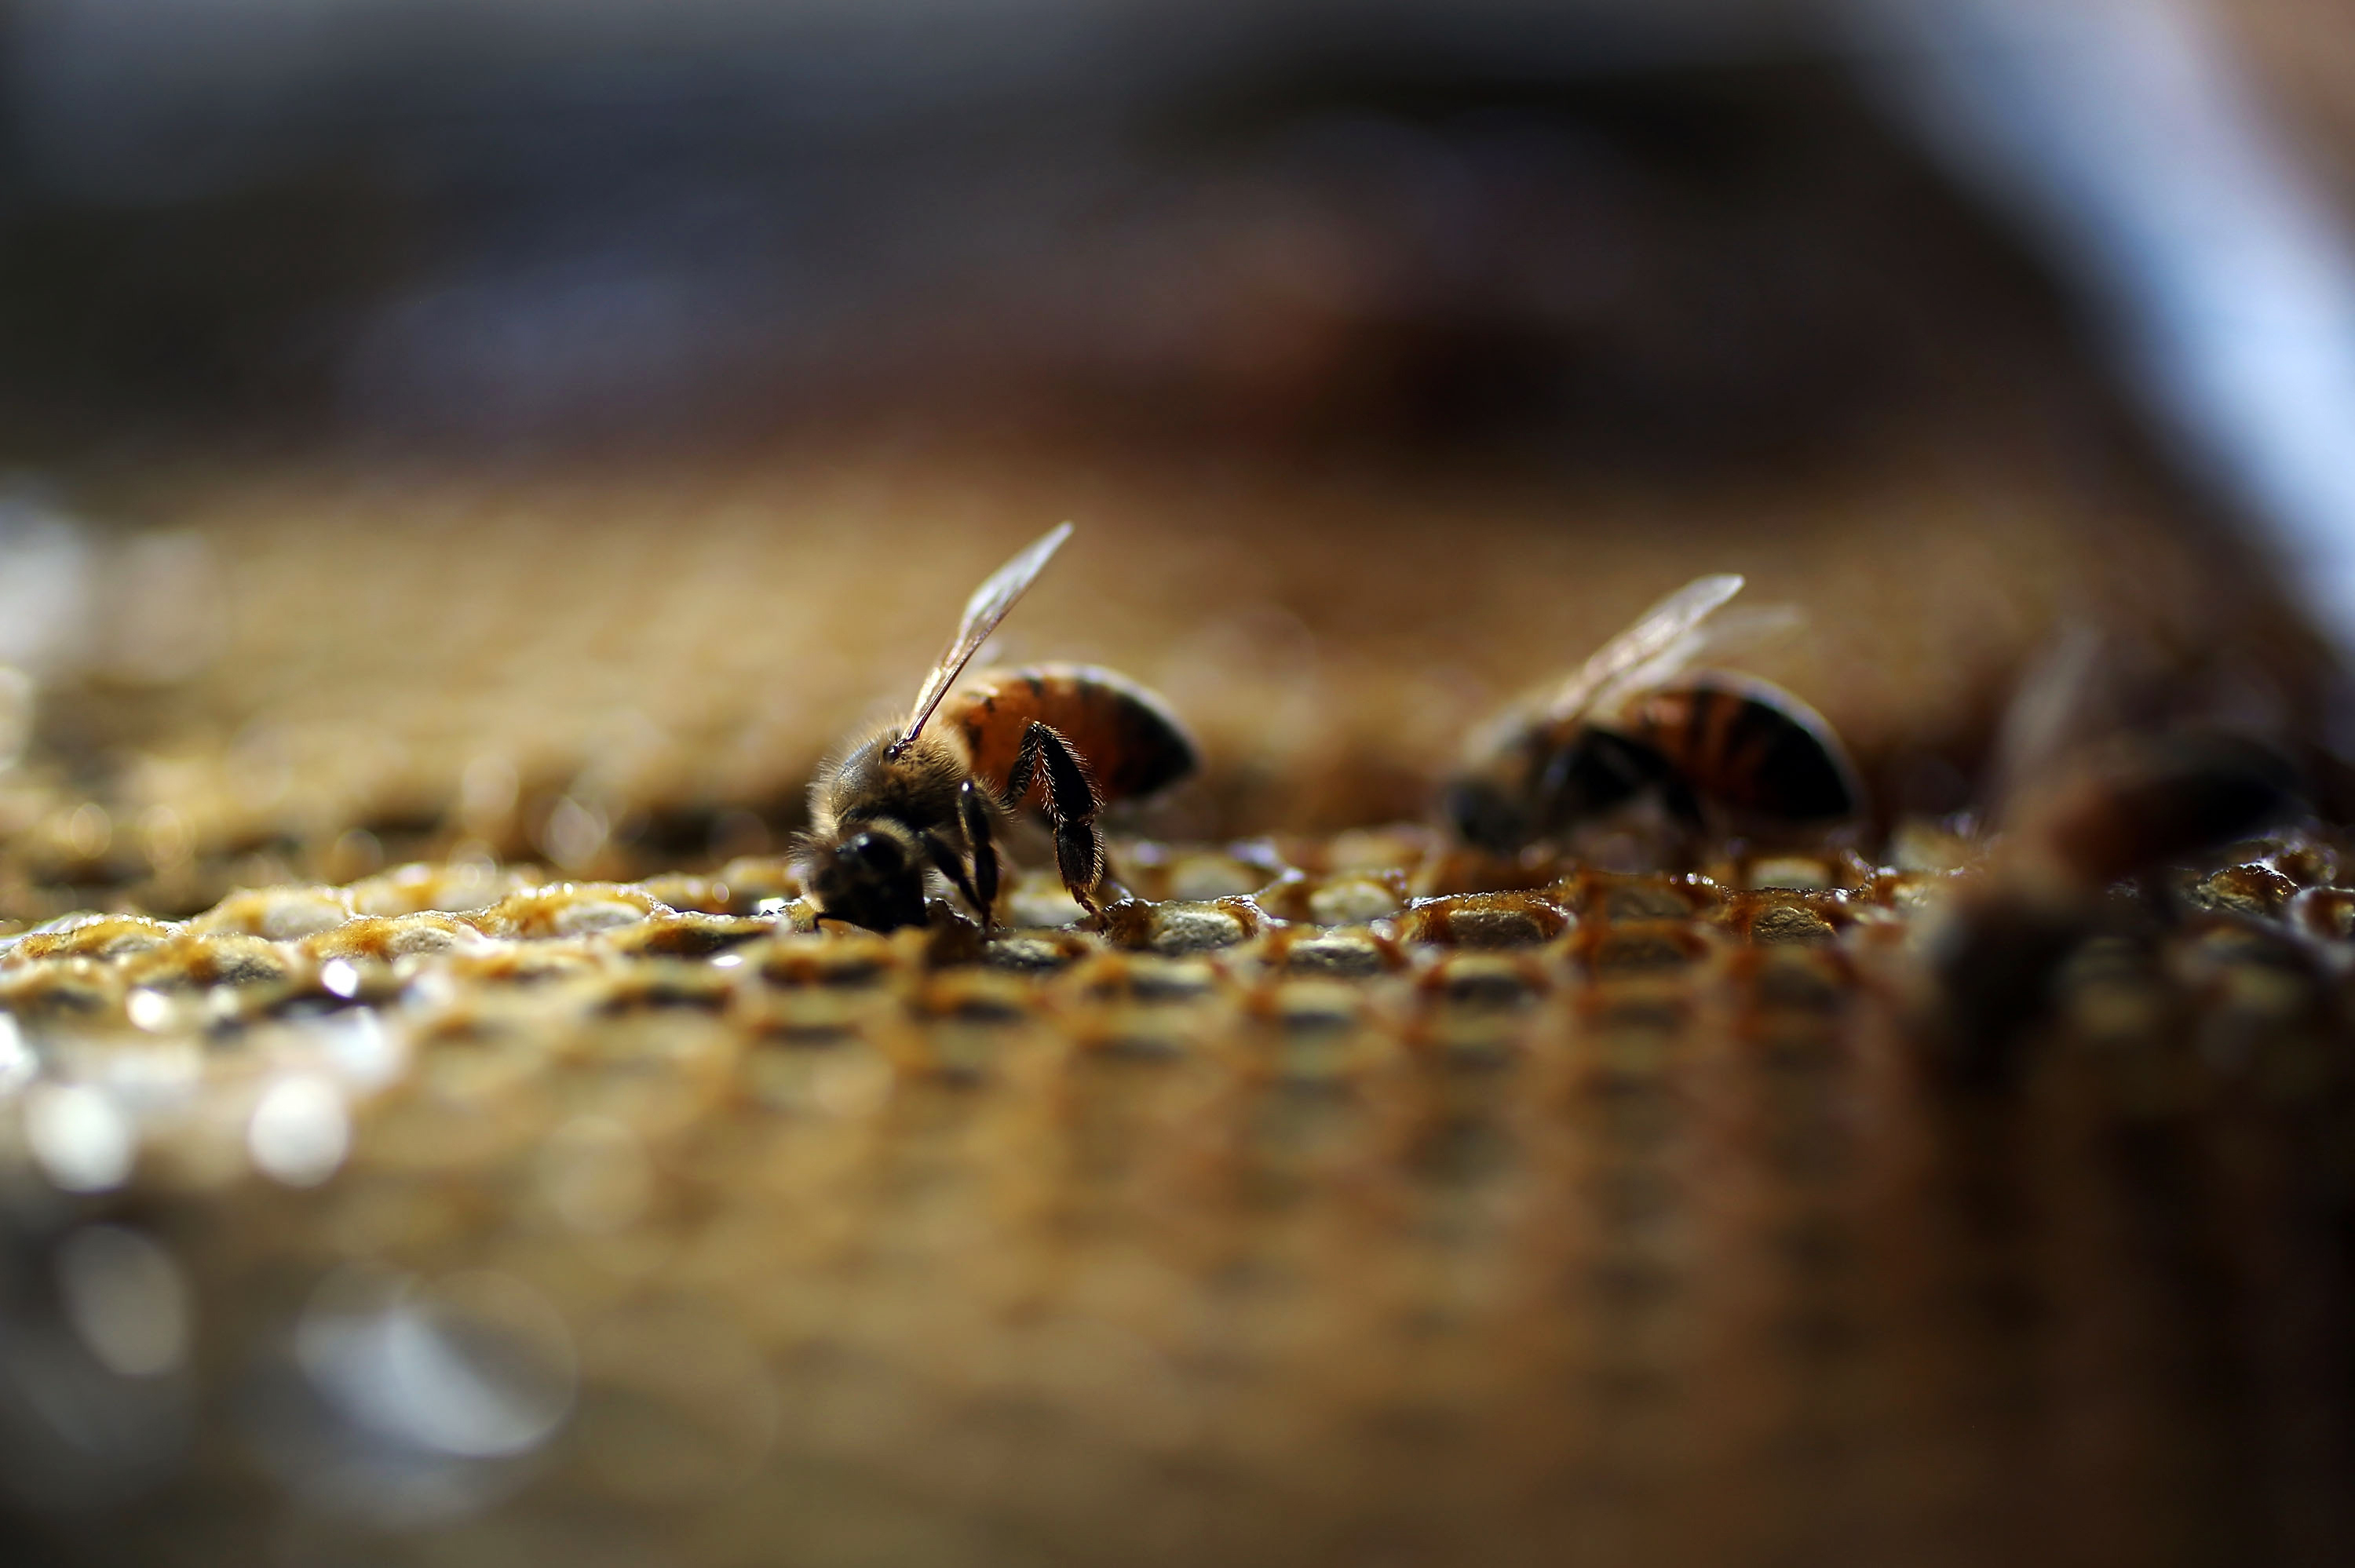 Pollinator Politics: Environmentalists Criticize Obama Plan To Save Bees